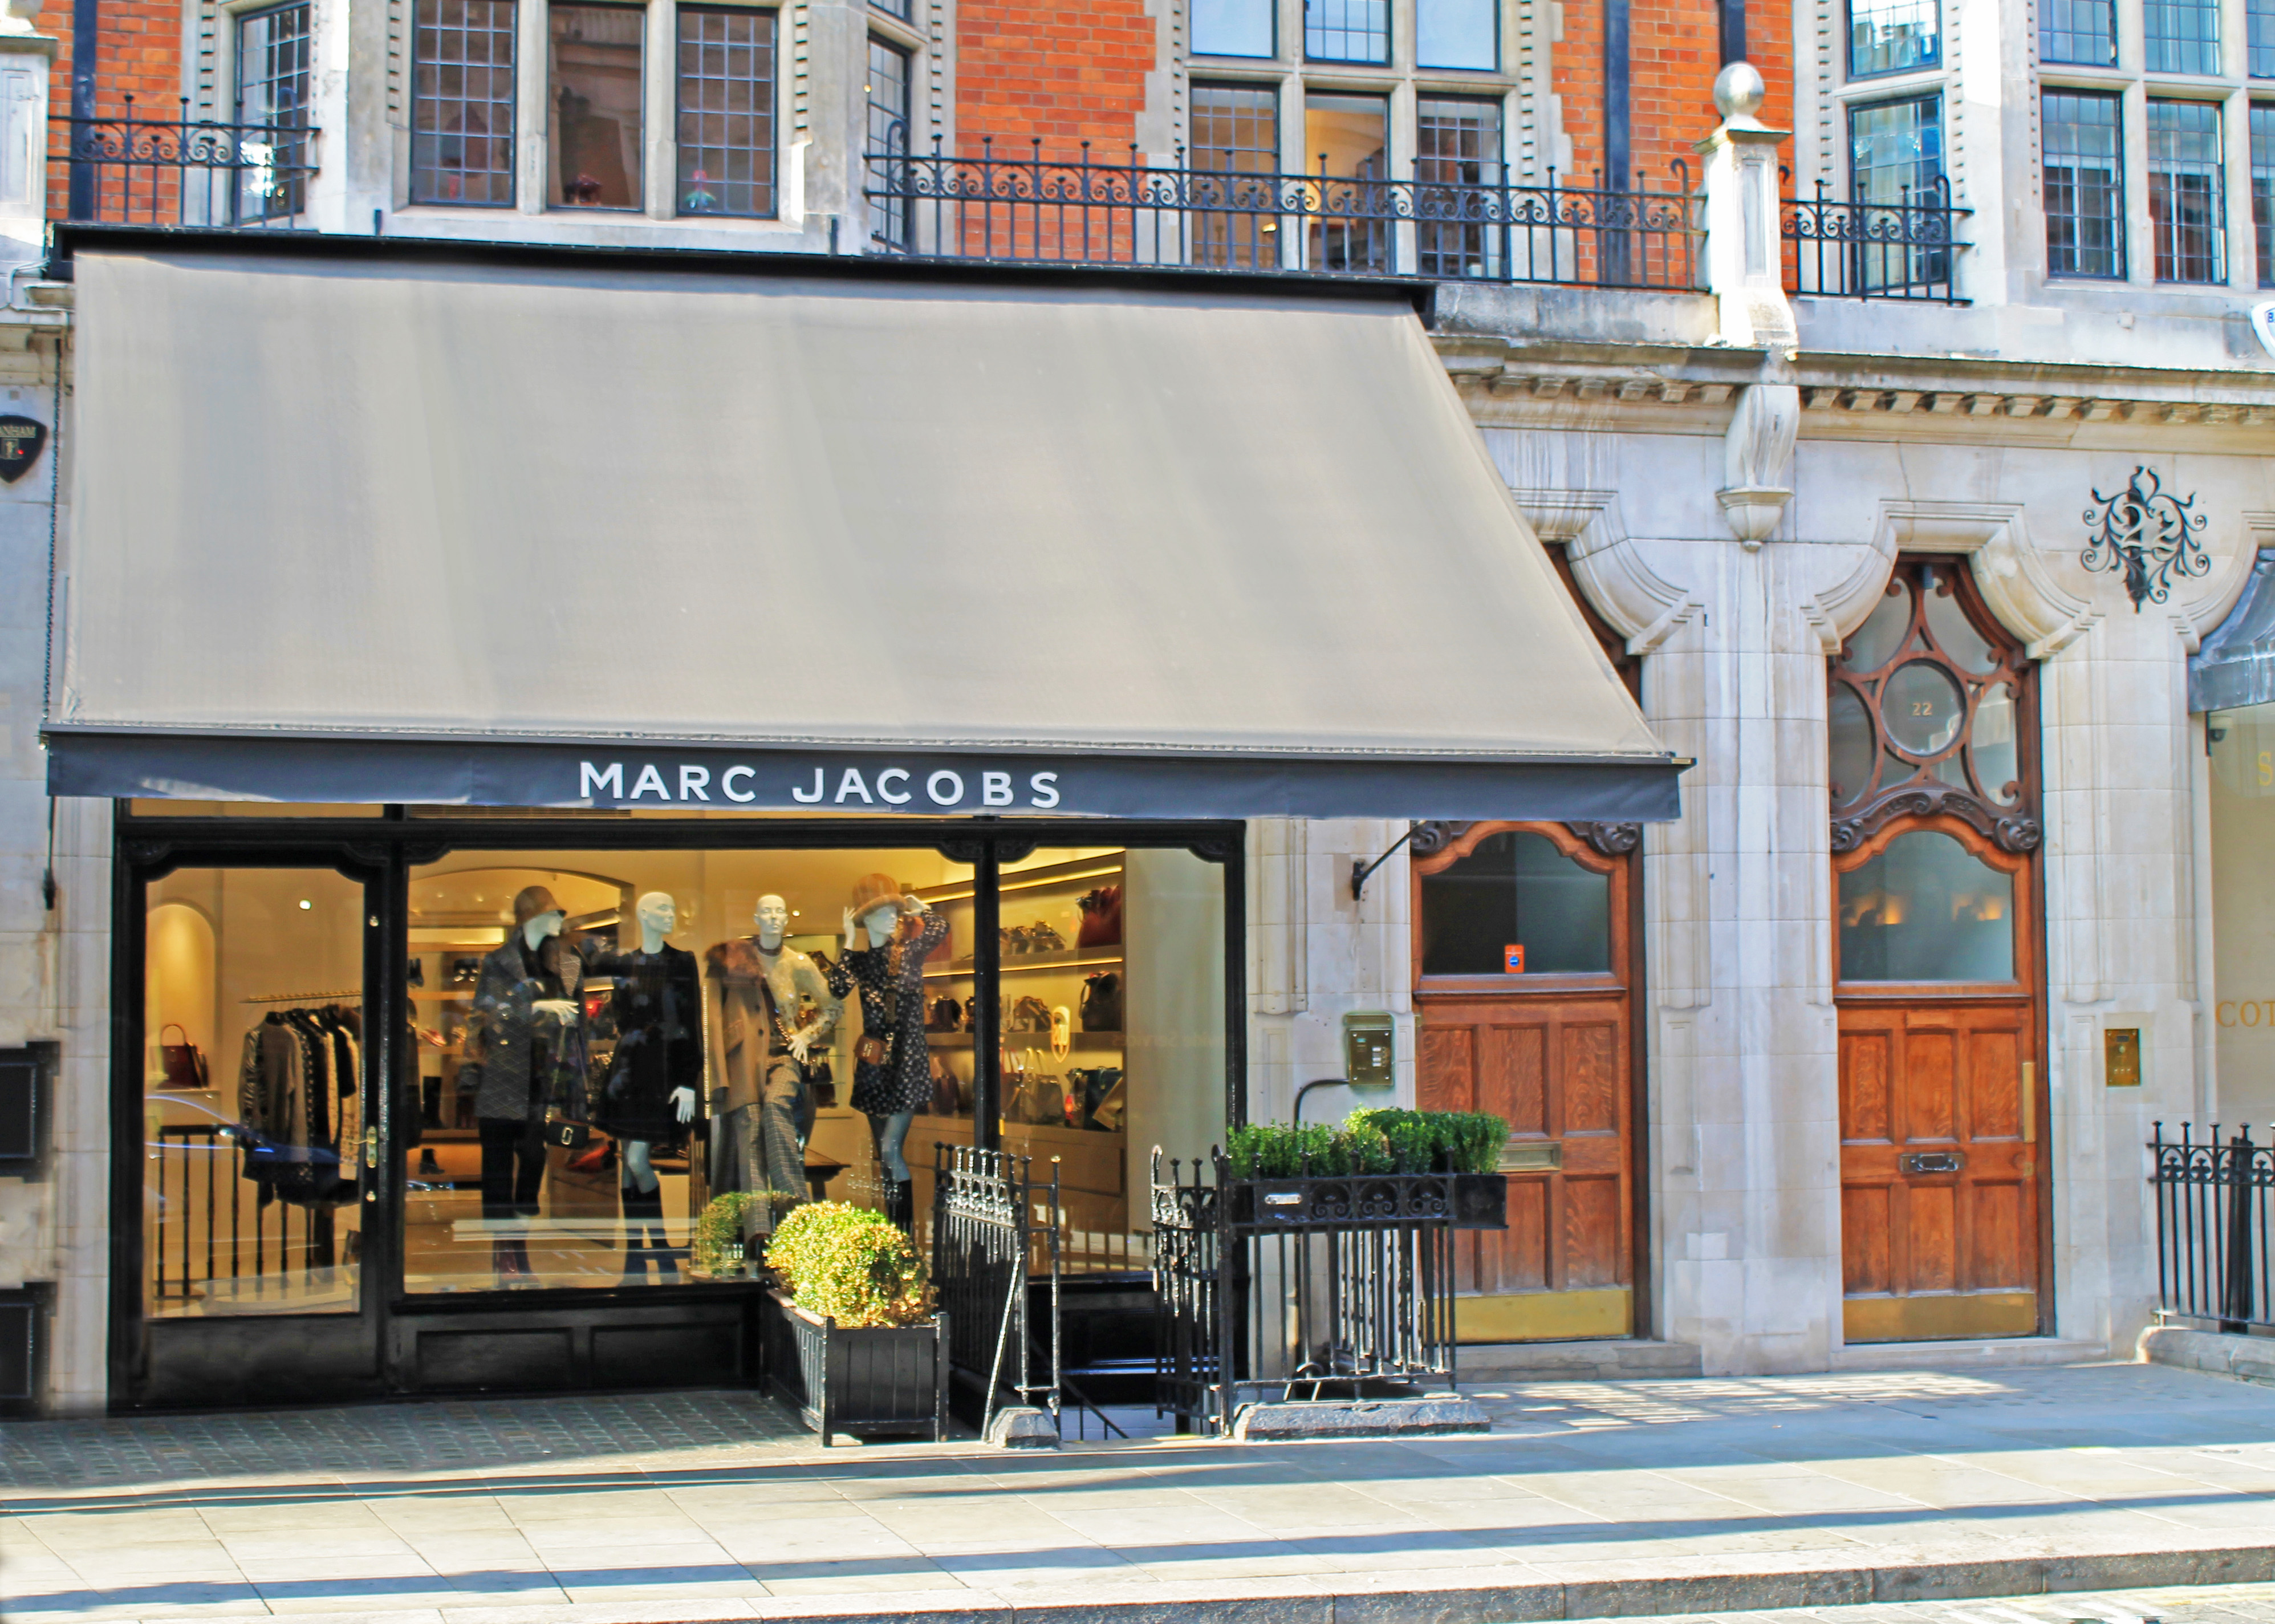 Marc Jacobs Mount street awning